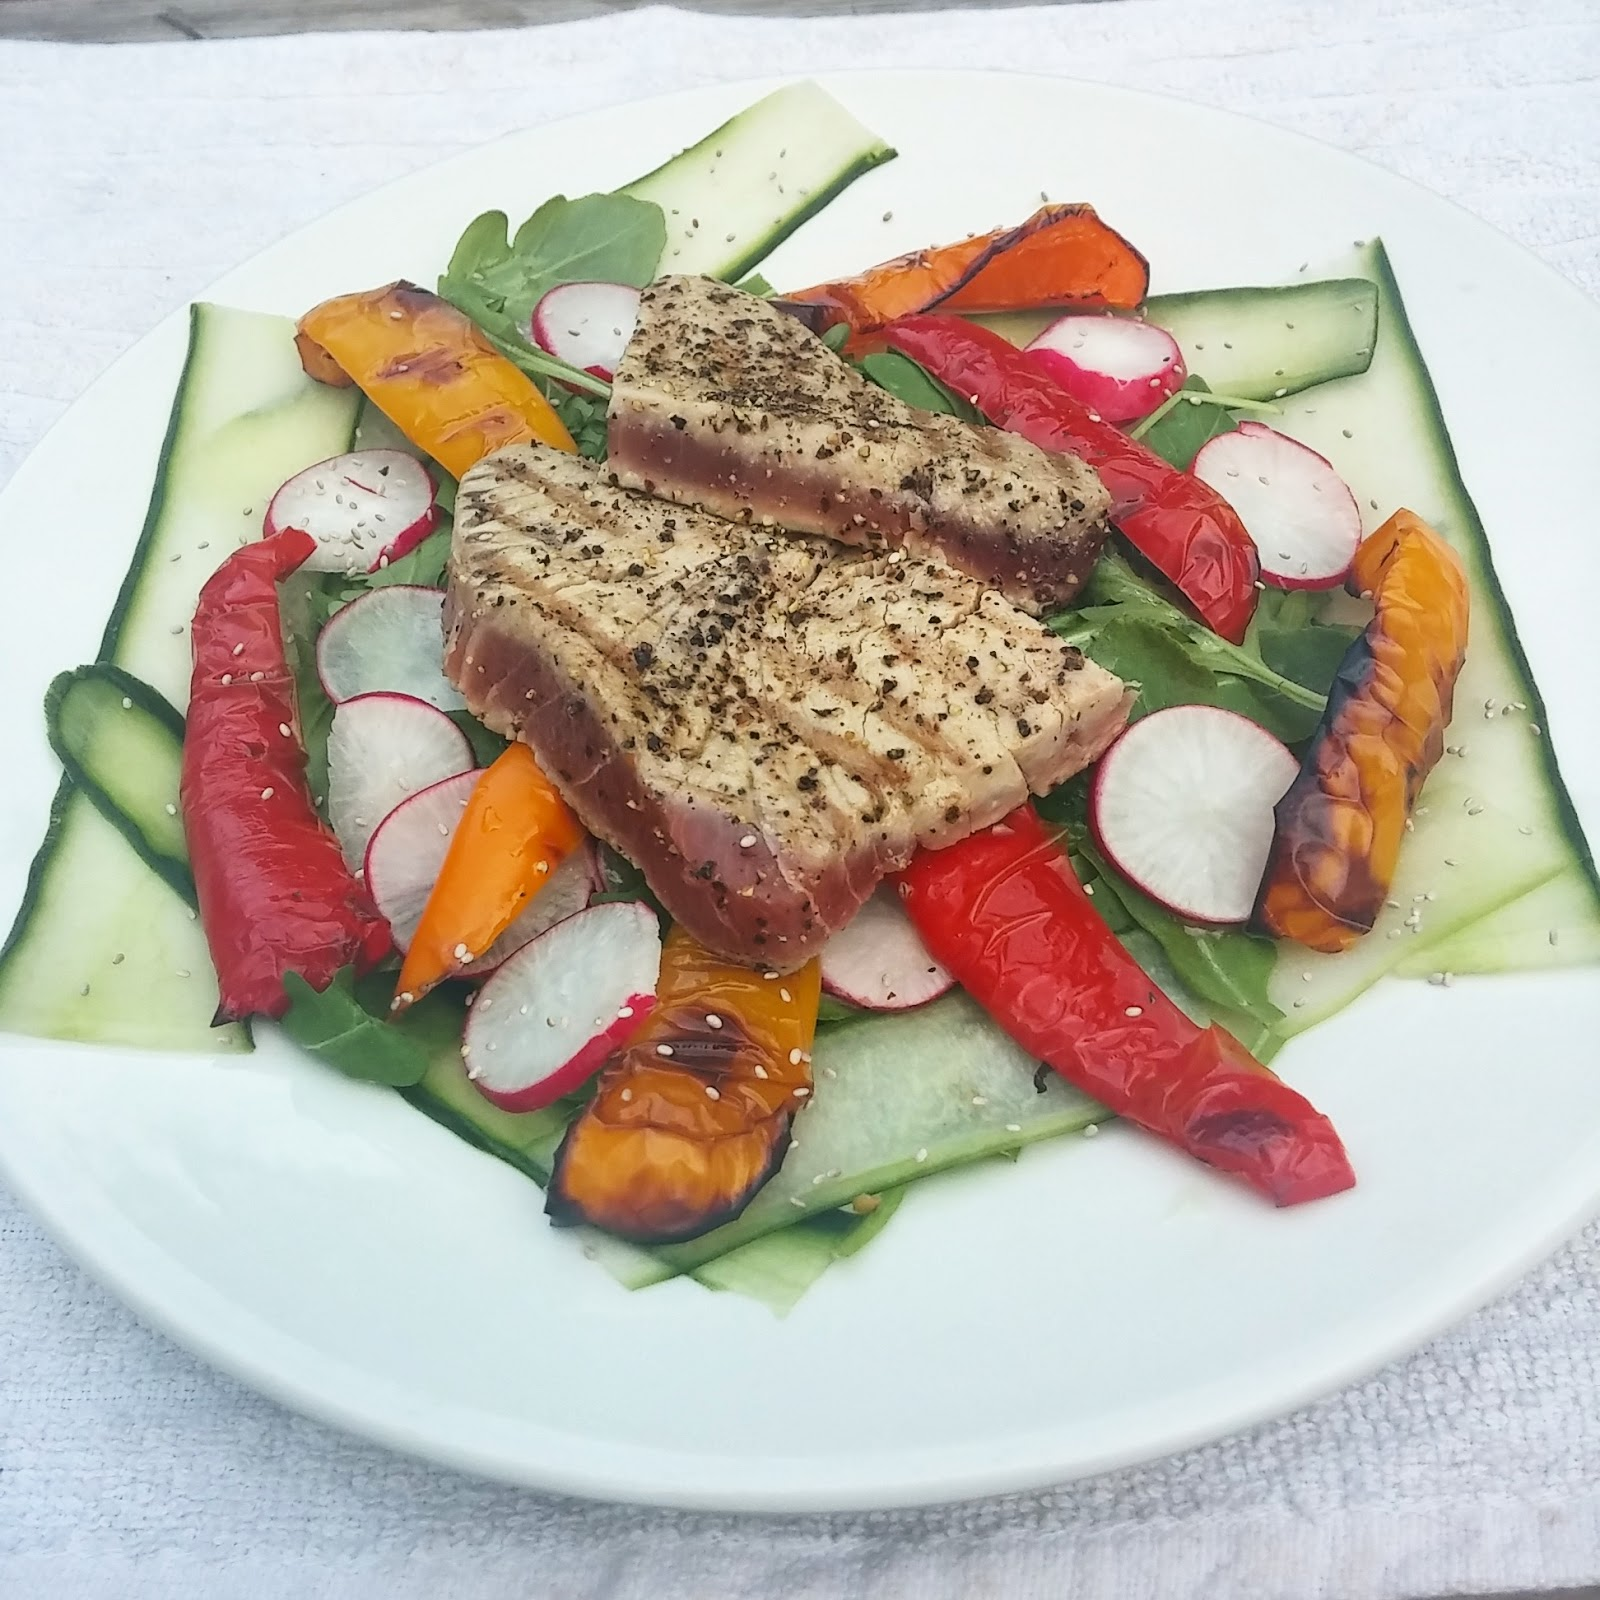 smoky sweet peppers, peppery rocket and radishes, lemon and cider vinegar dressing under a perfectly cooked rare tuna steak